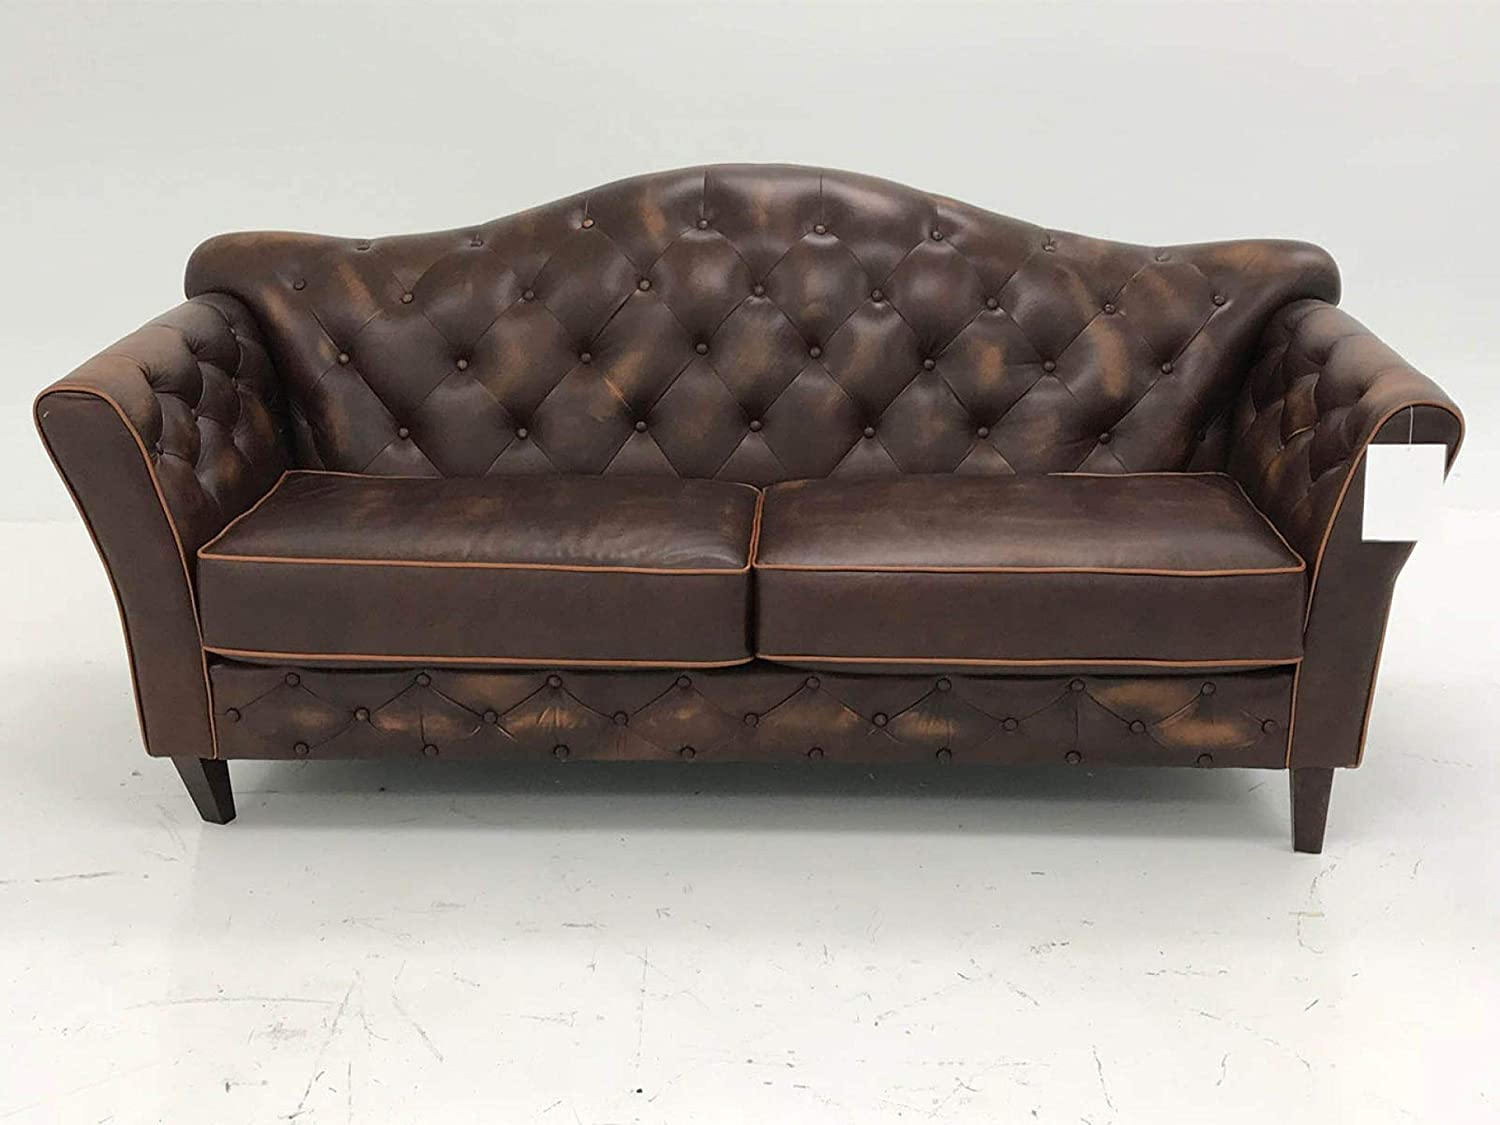 Amazon.com: Leather Sofa 2-Seat, Brown: Kitchen & Dining